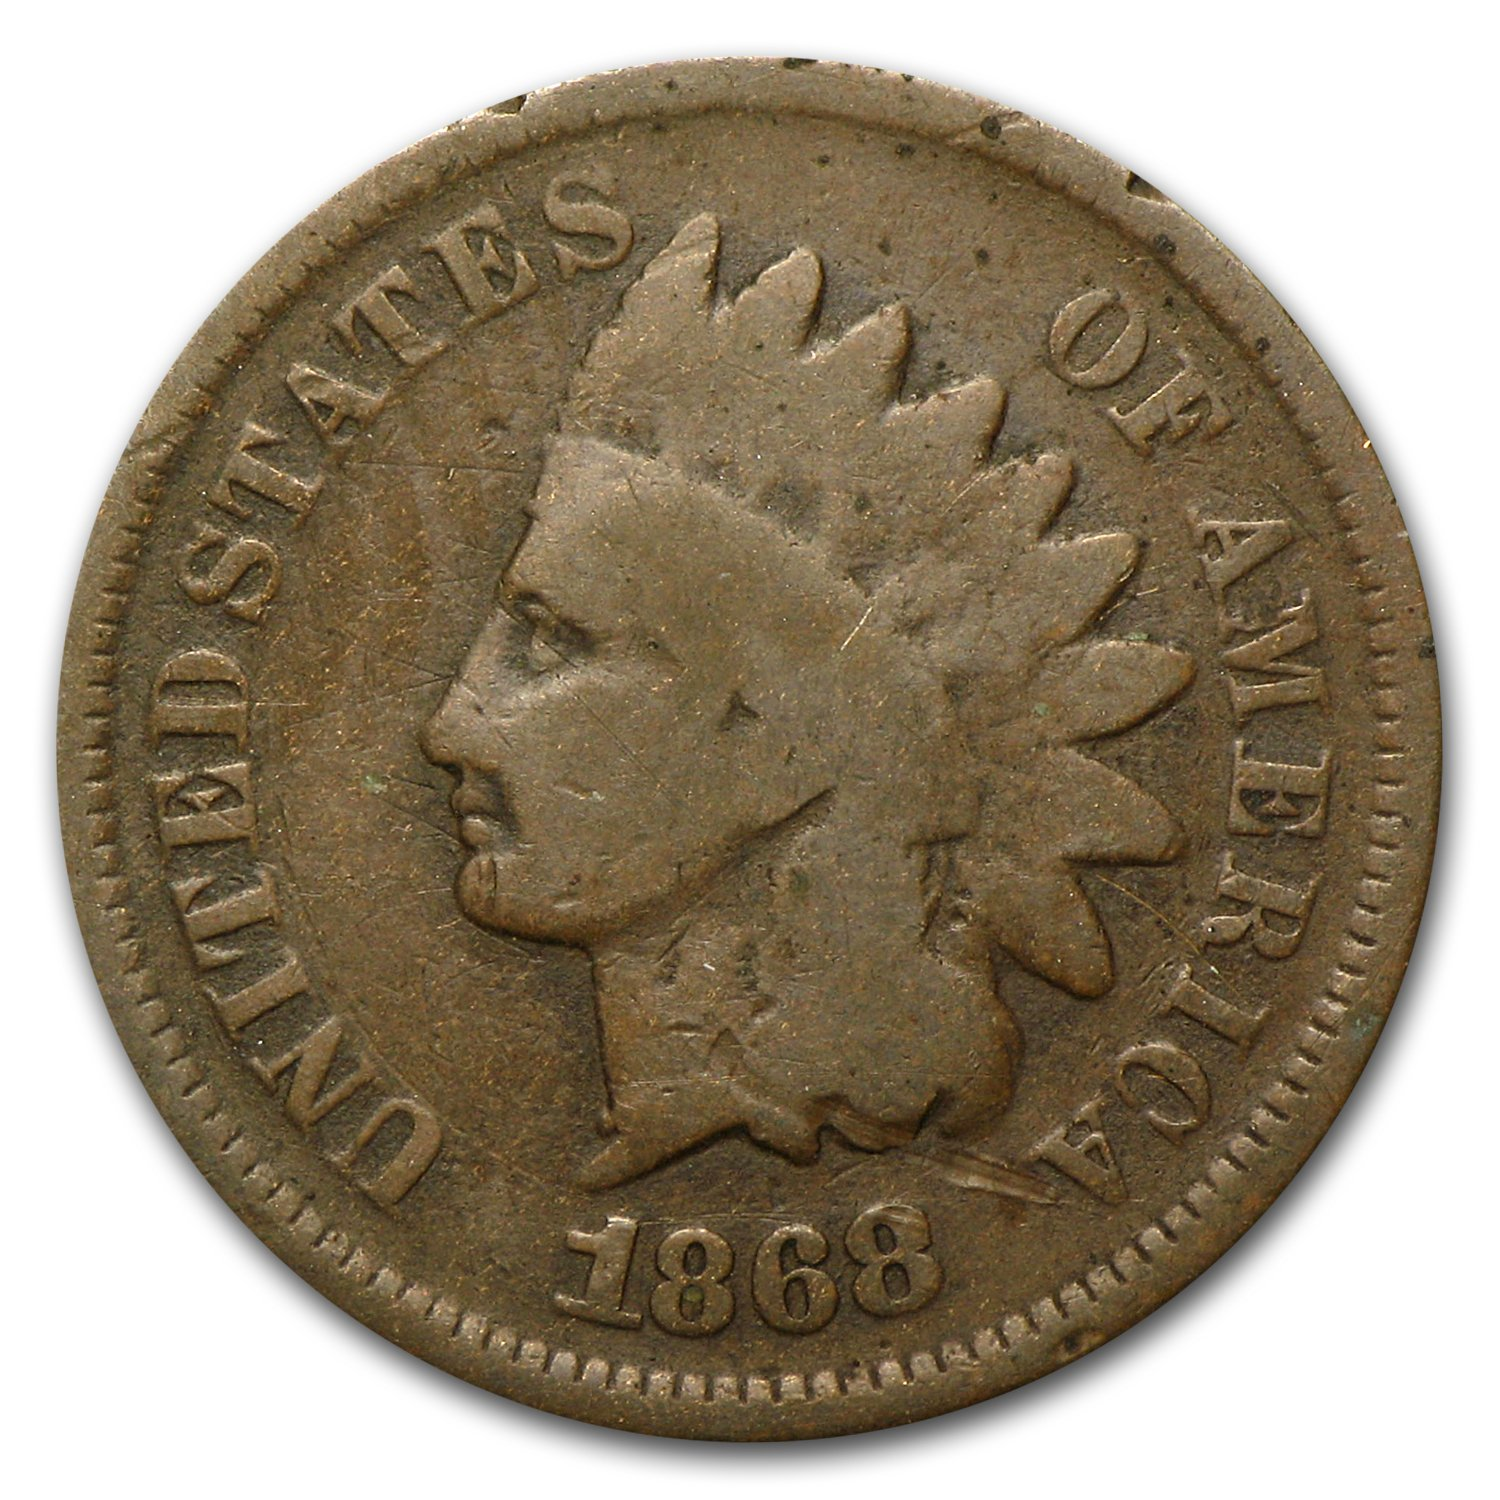 1880 INDIAN HEAD CENT PENNY CIRCULATED GRADE AG GOOD 95/% COPPER COIN